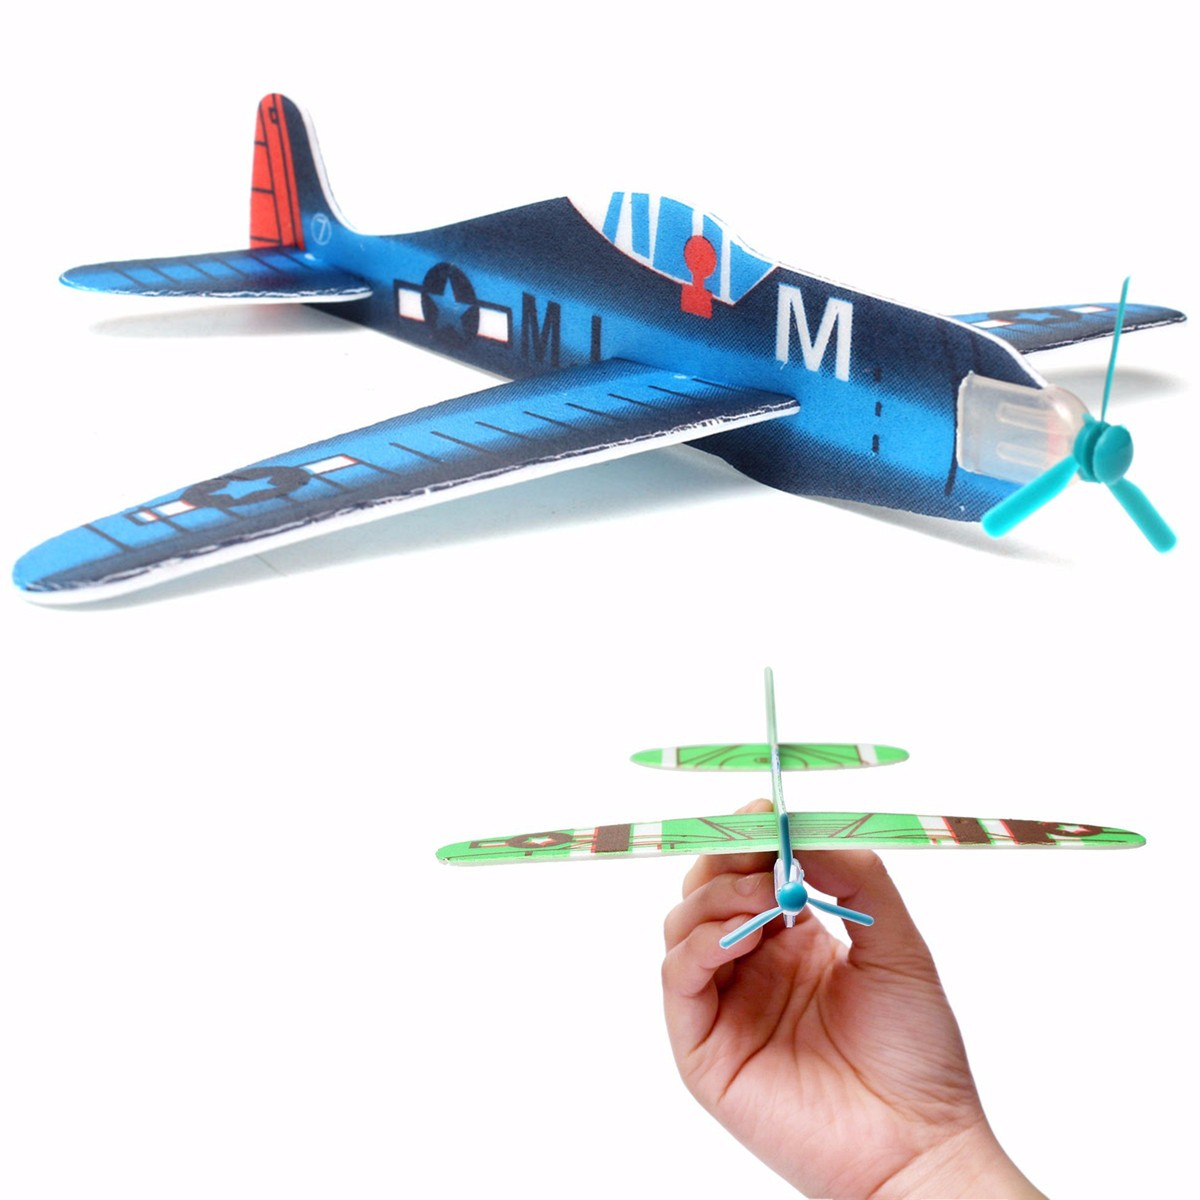 10Pcs DIY Flying Glider Planes Educational Toys For Children Hand Throwing Gift Birthday Christmas Party Bag Filler Multi Color image